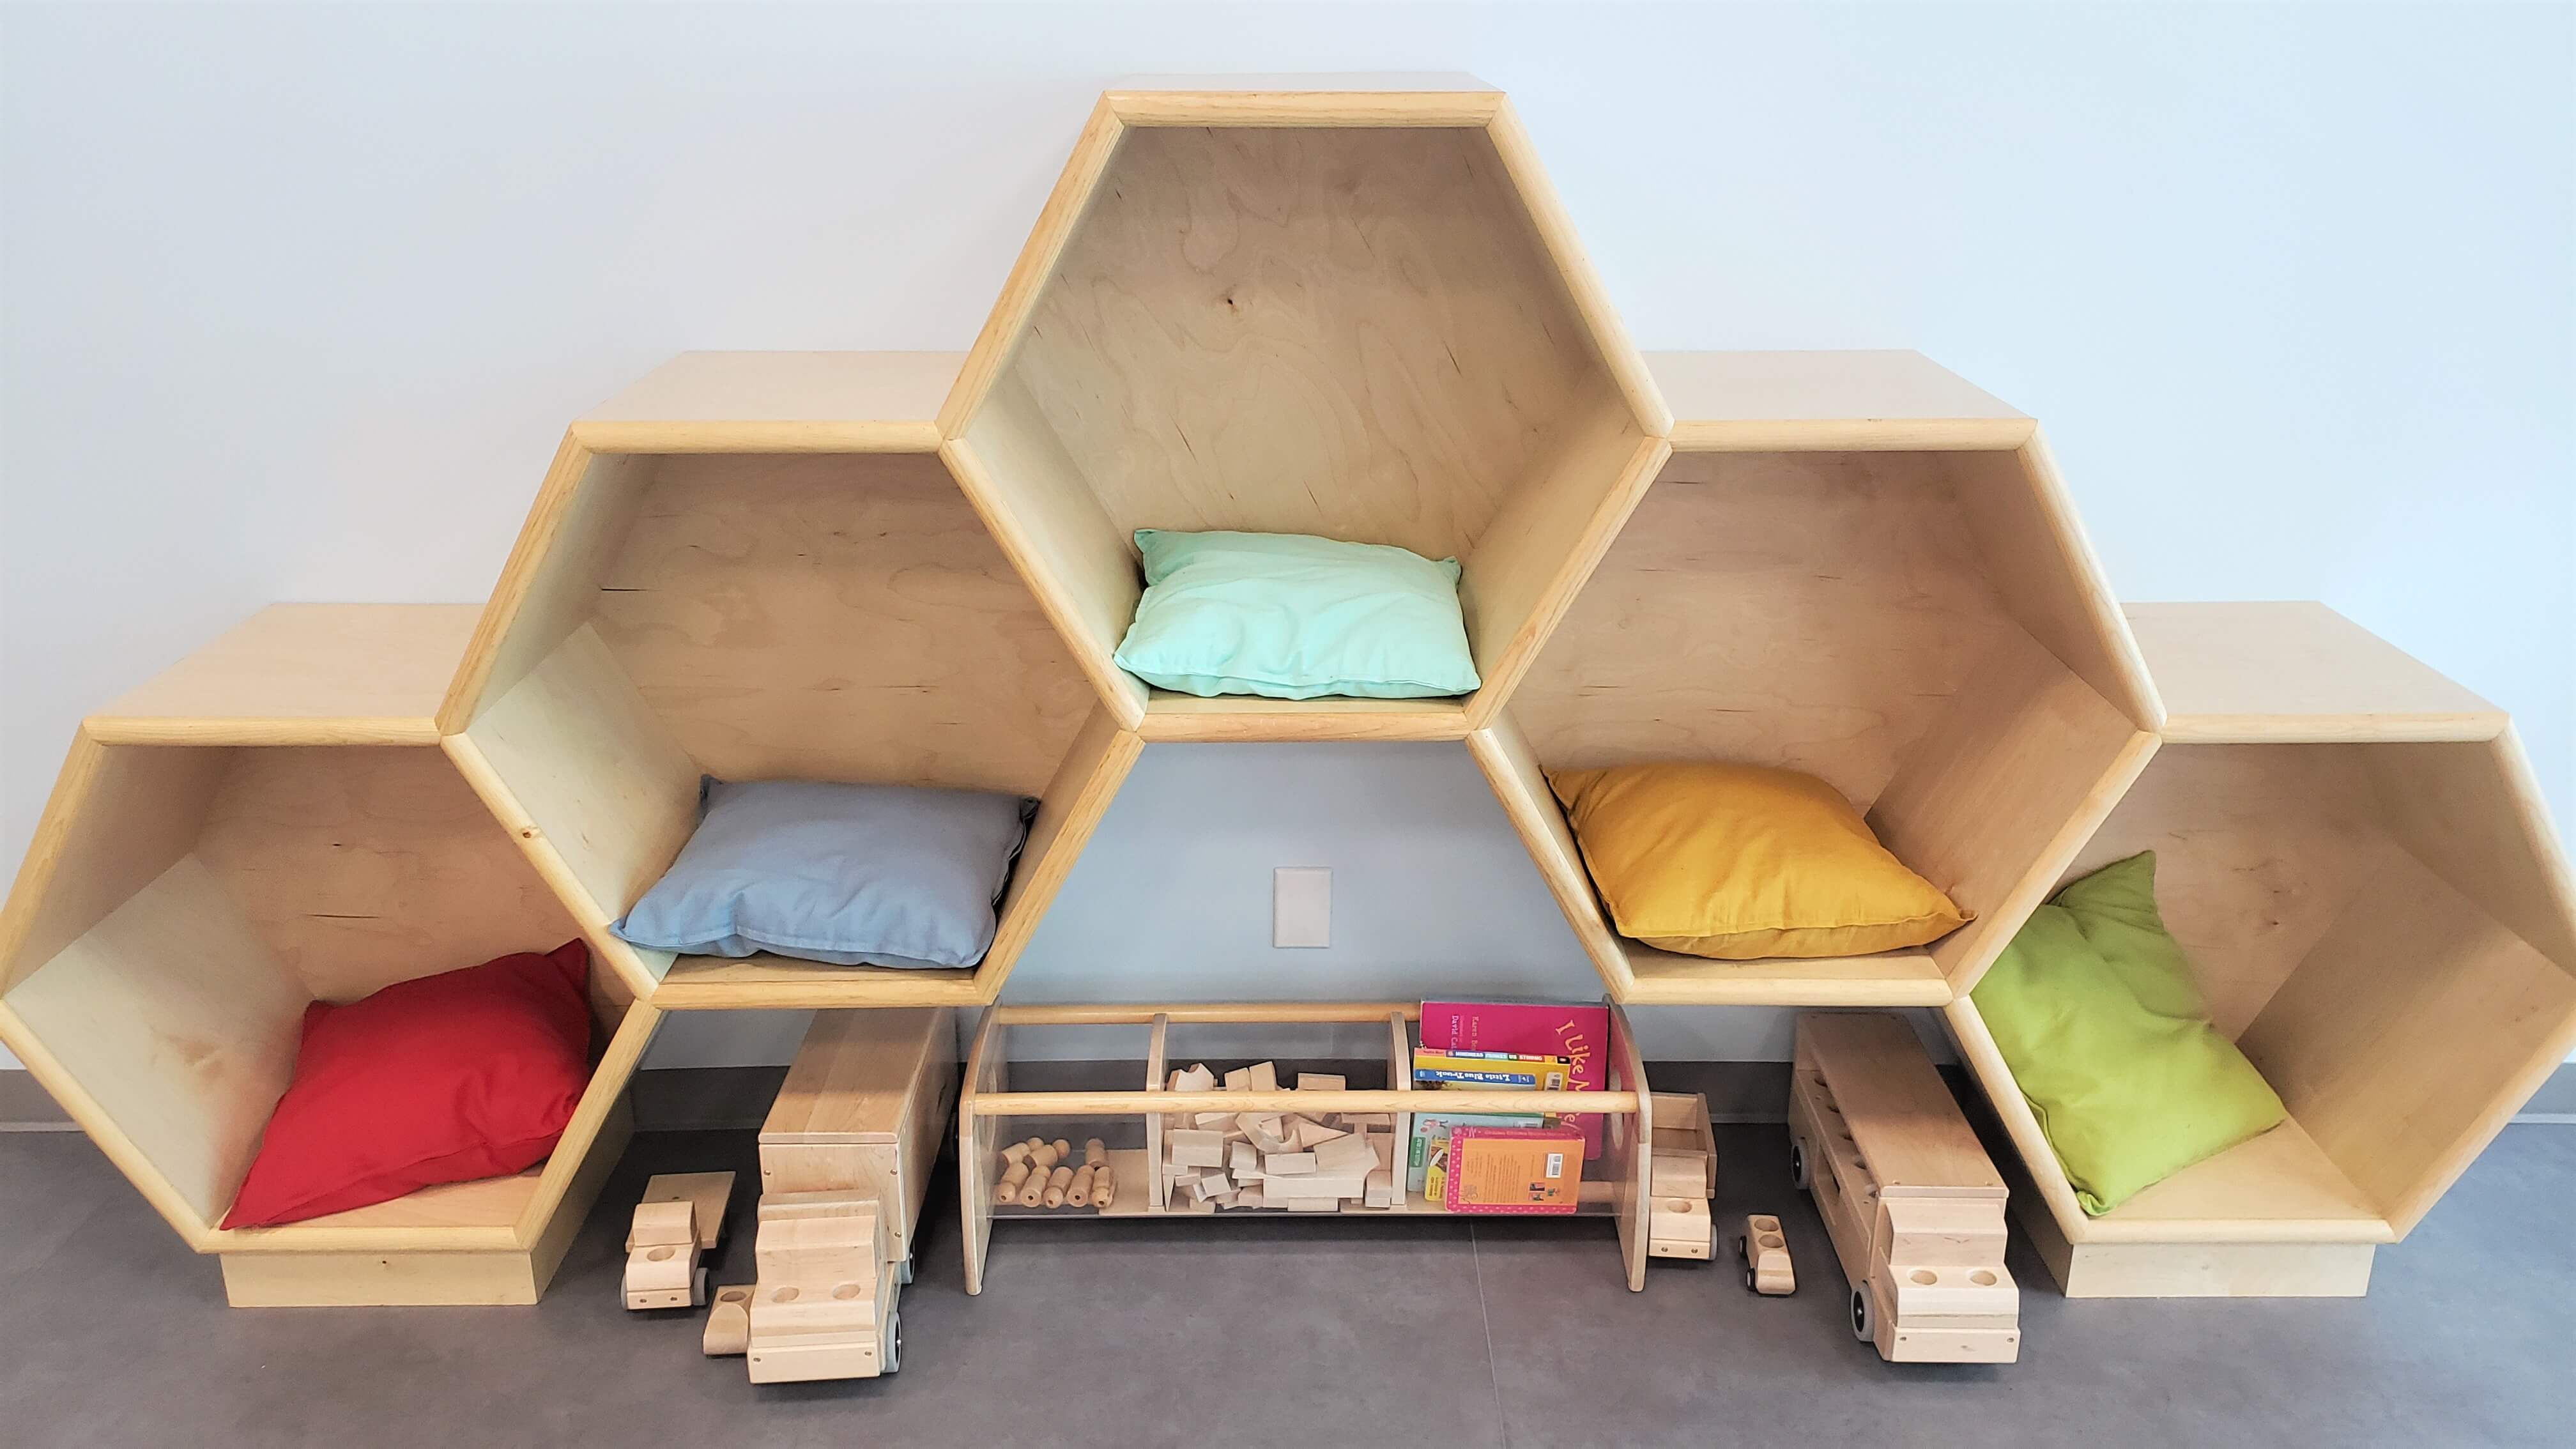 Honeycombed built-in reading nook